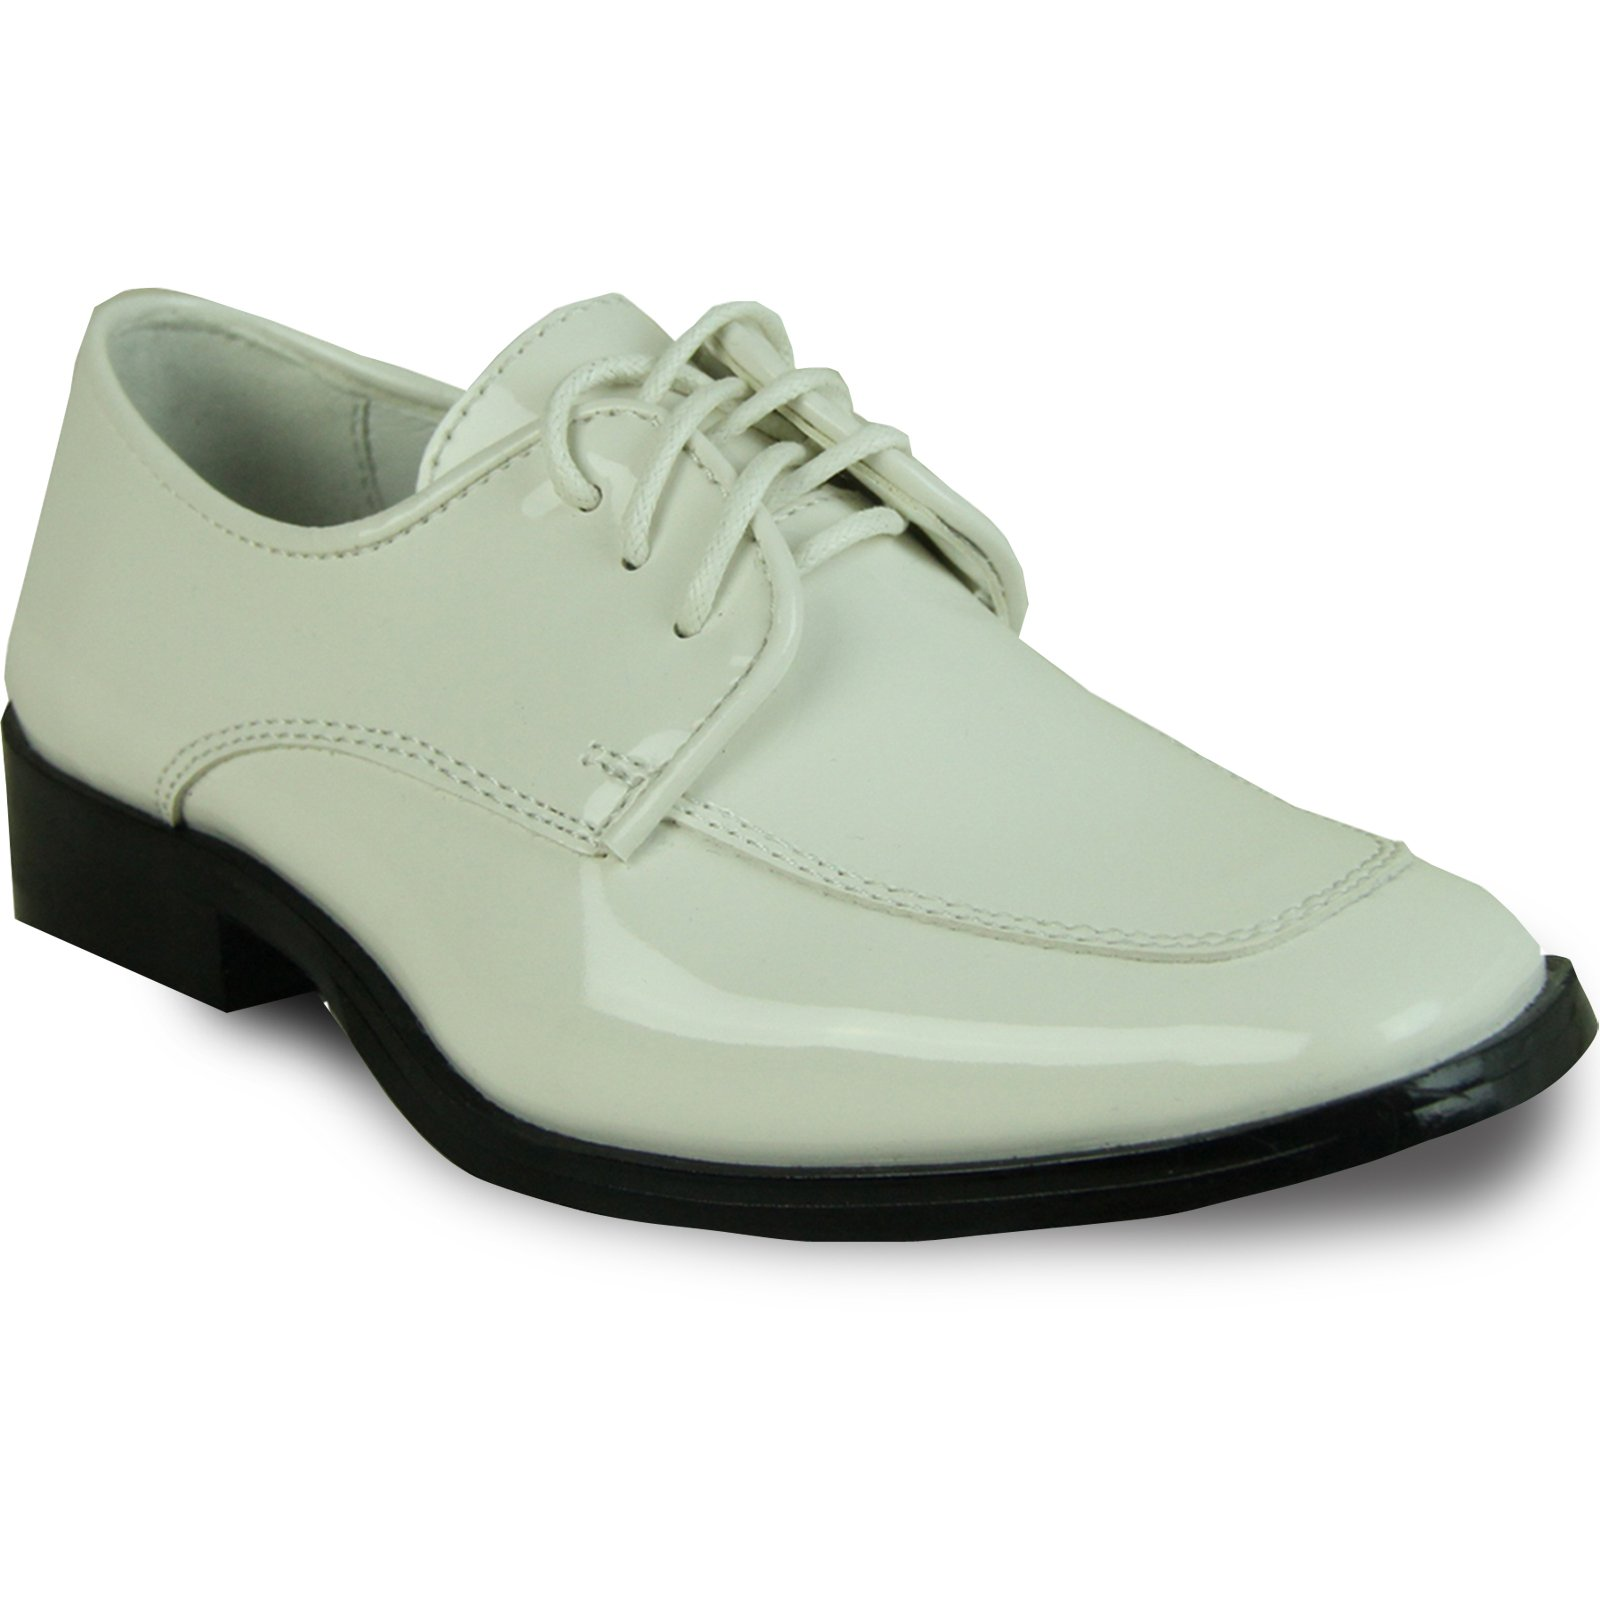 VANGELO Boy Tuxedo Shoe TUX-3K Fashion Square Toe Designed for Wedding and Formal Events with Wrinkle Free Material Ivory Patent 2Y